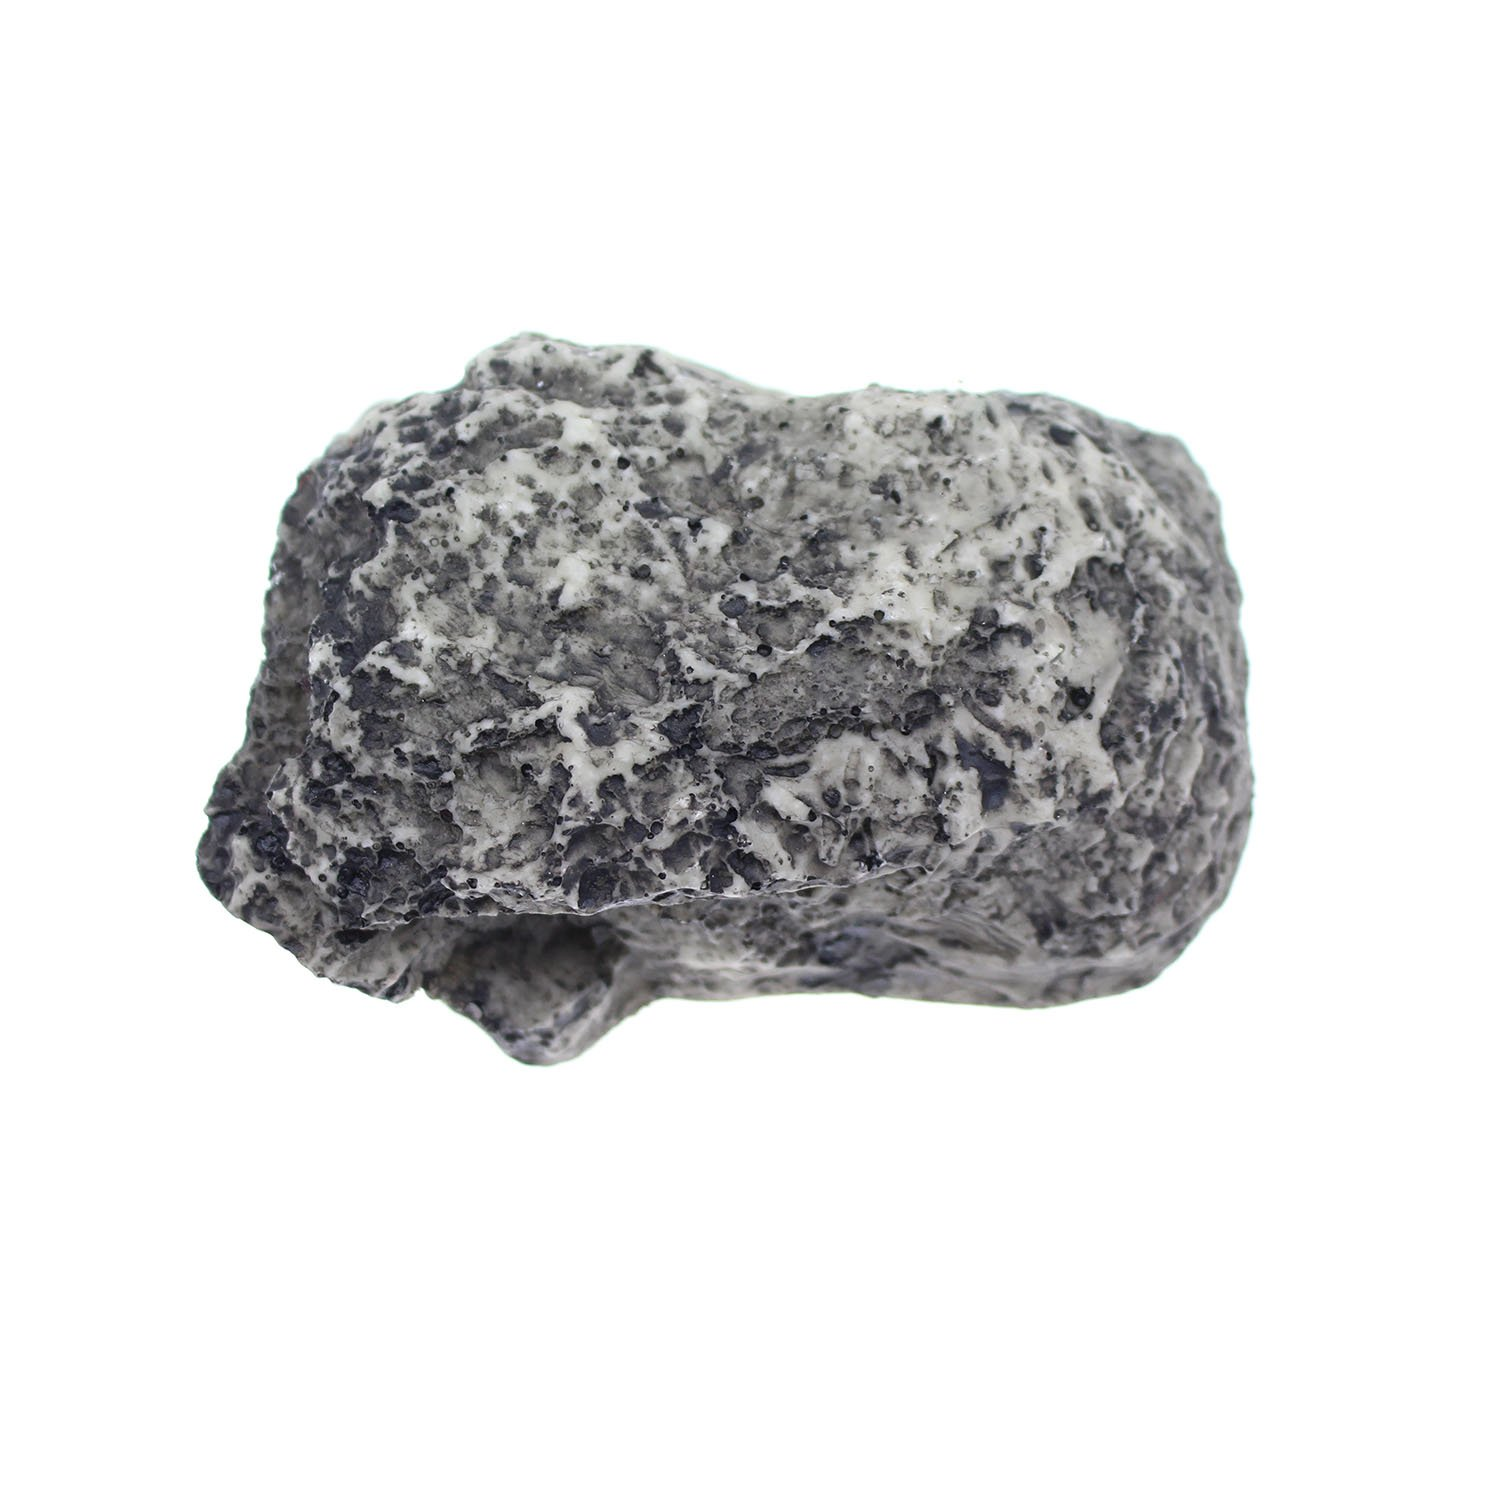 Safe for Outdoor Garden//Yard Popular Practical Performance 2Pack DYWISHKEY Hide a Spare Key Fake Rock Gray Camouflage Stone Diversion Safe Looks /& Feels Like Real Stone Rock